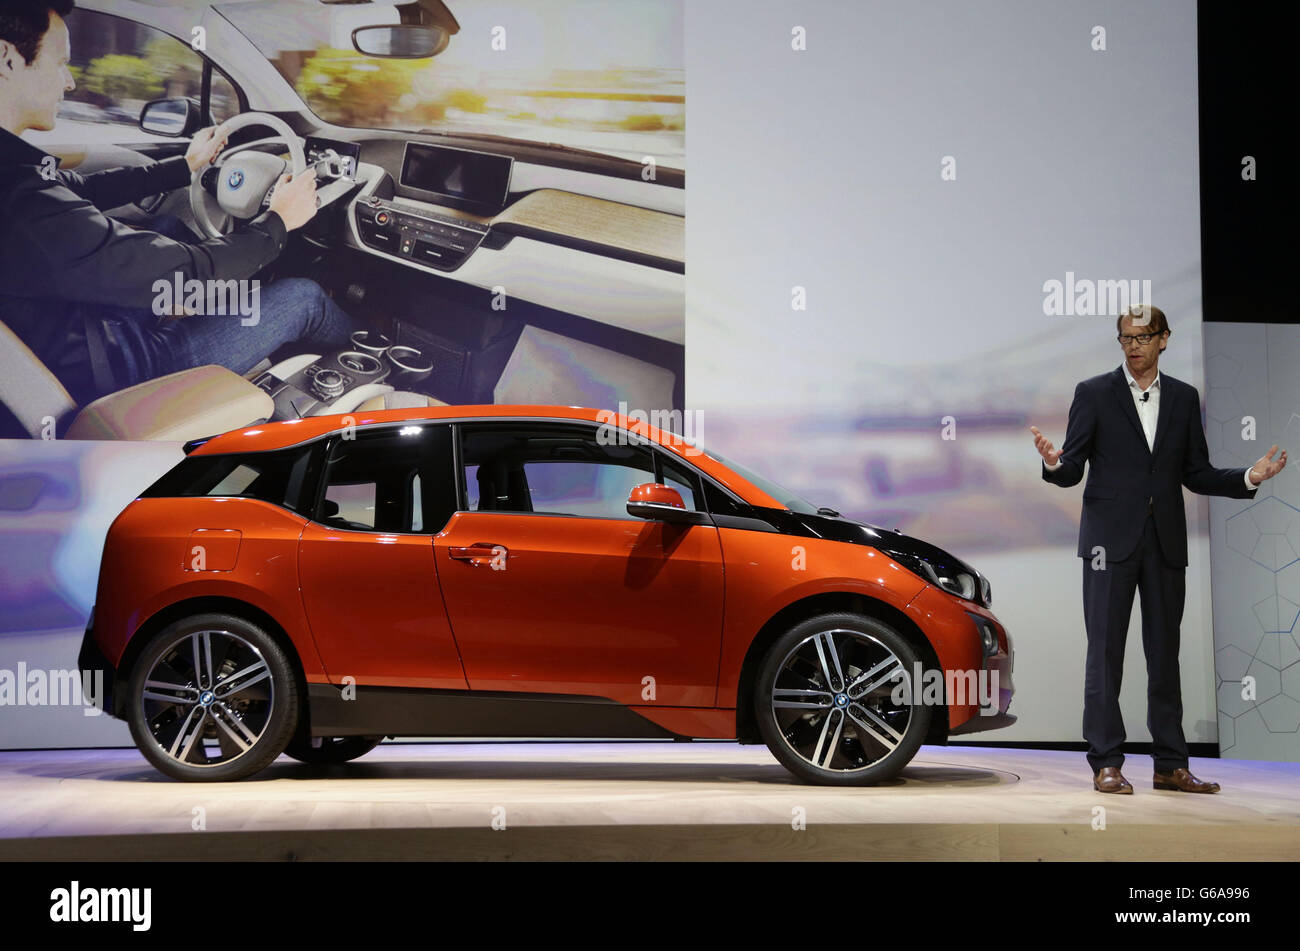 Bmw Electric Car Launch Stock Photo 107176978 Alamy